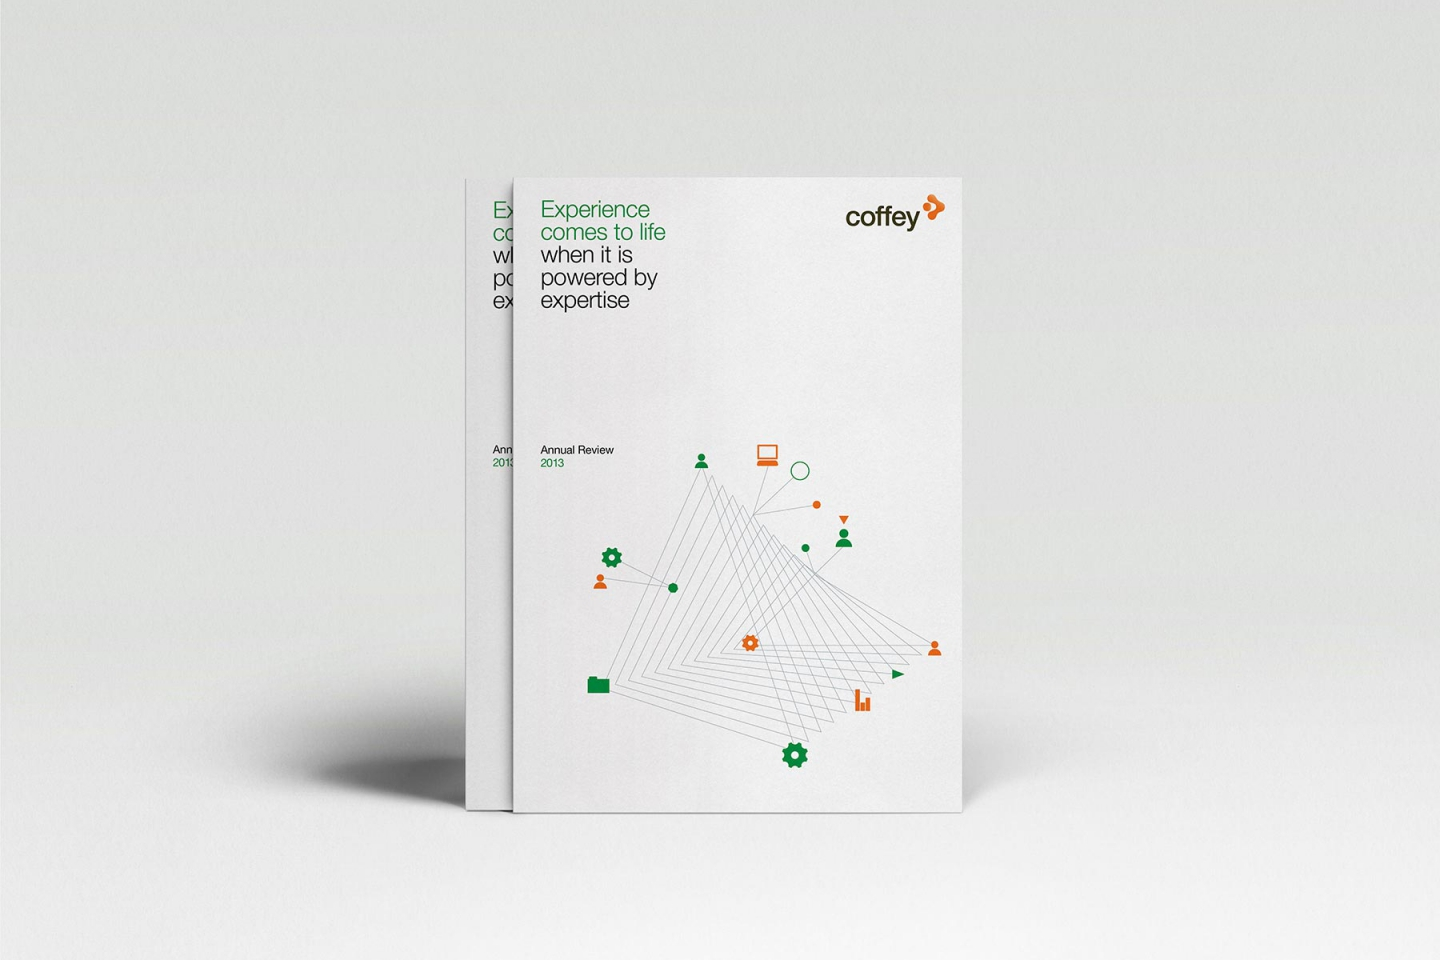 Coffey: Annual Report + Review 2013